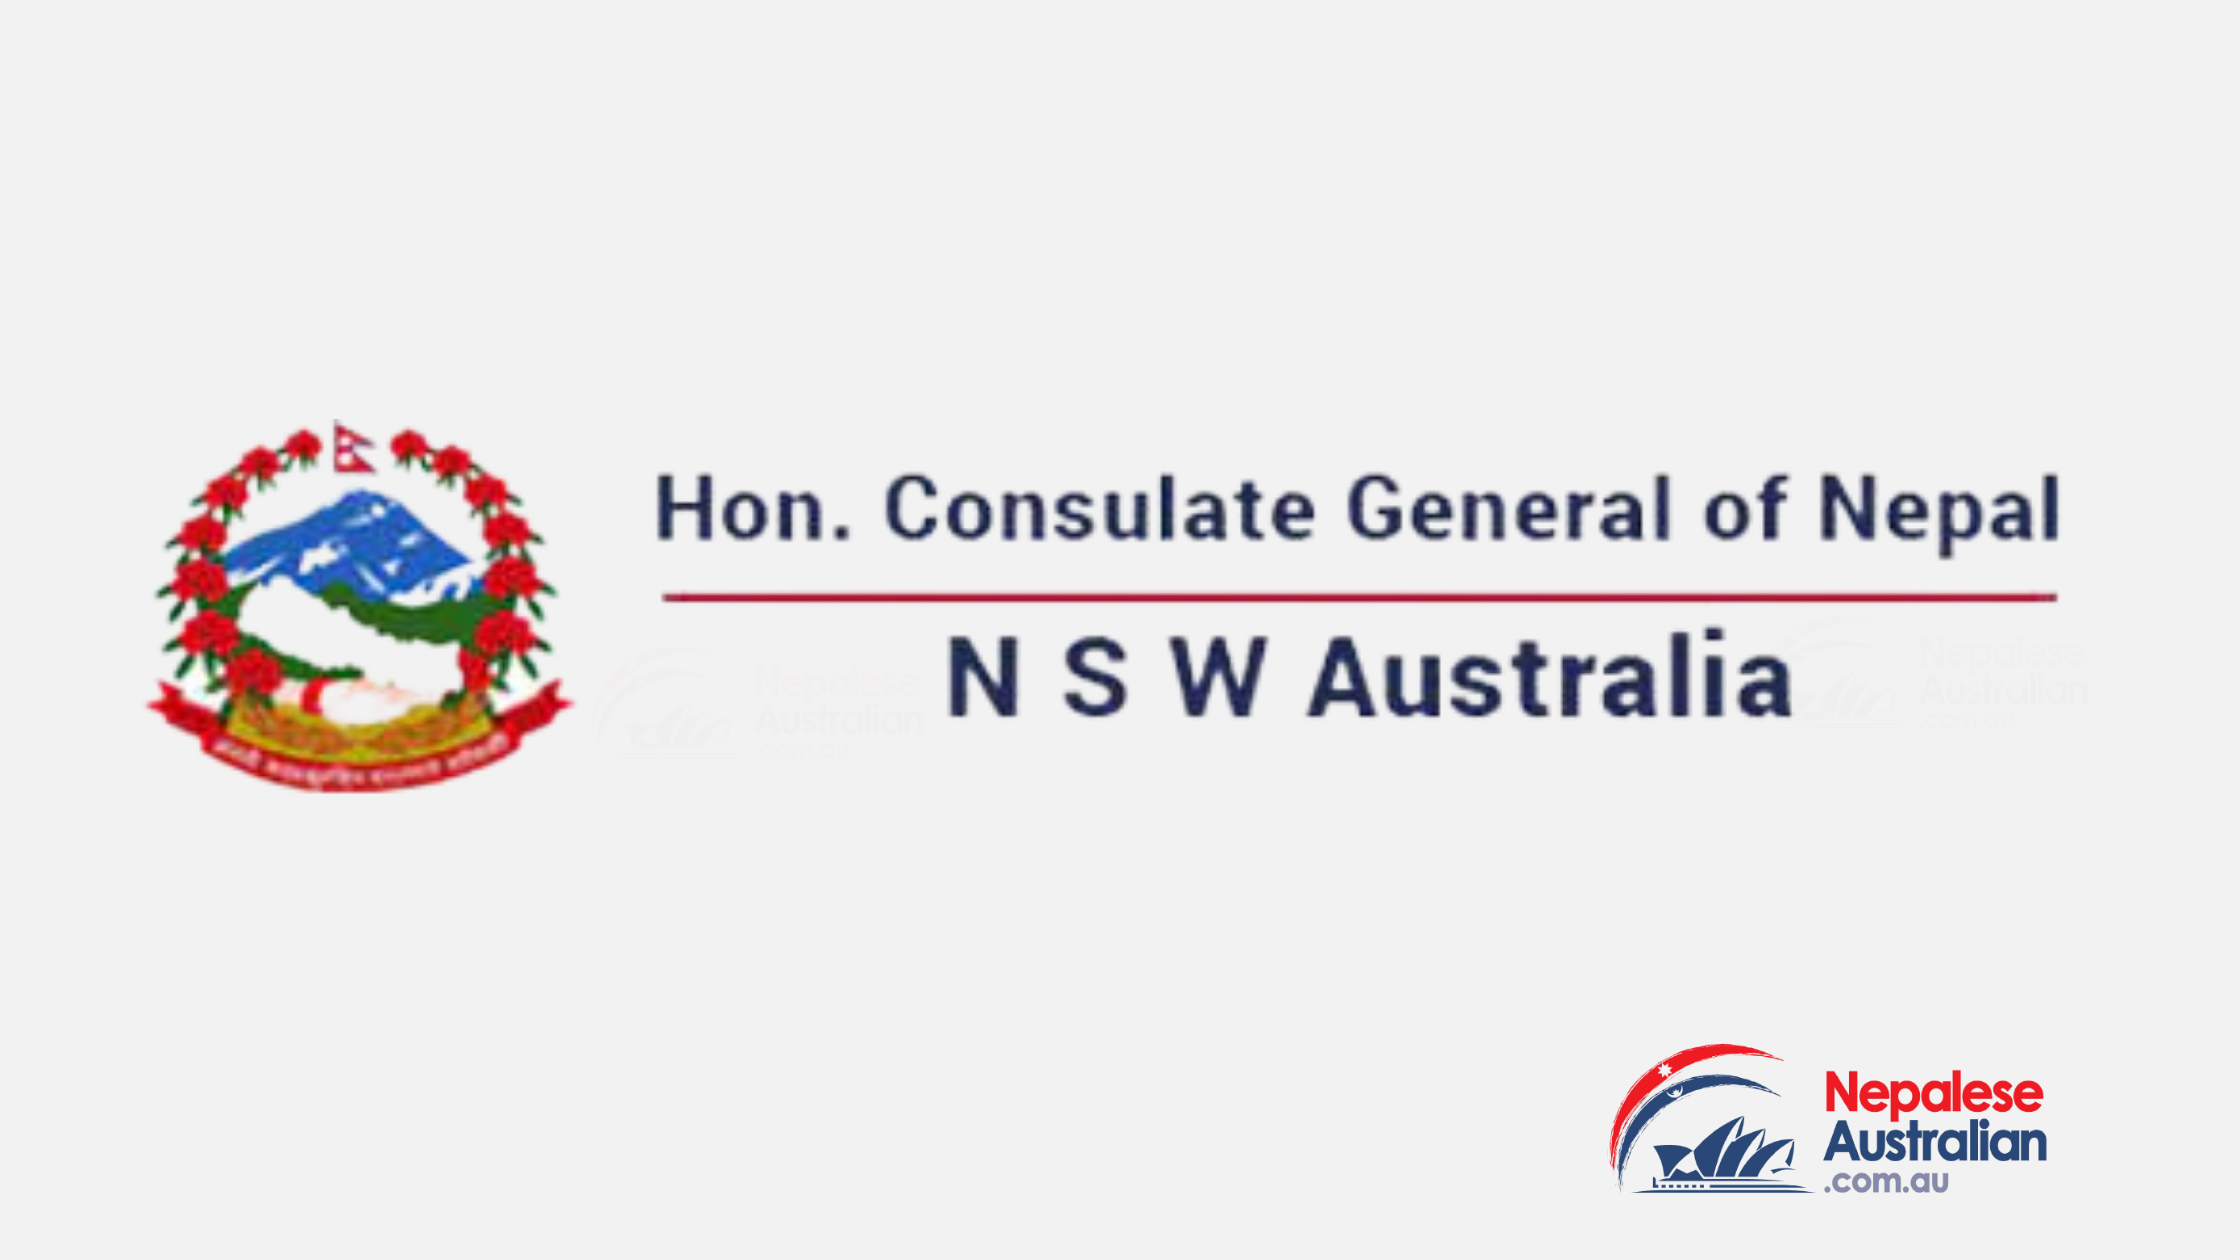 Honorary Consulate General of Nepal, NSW